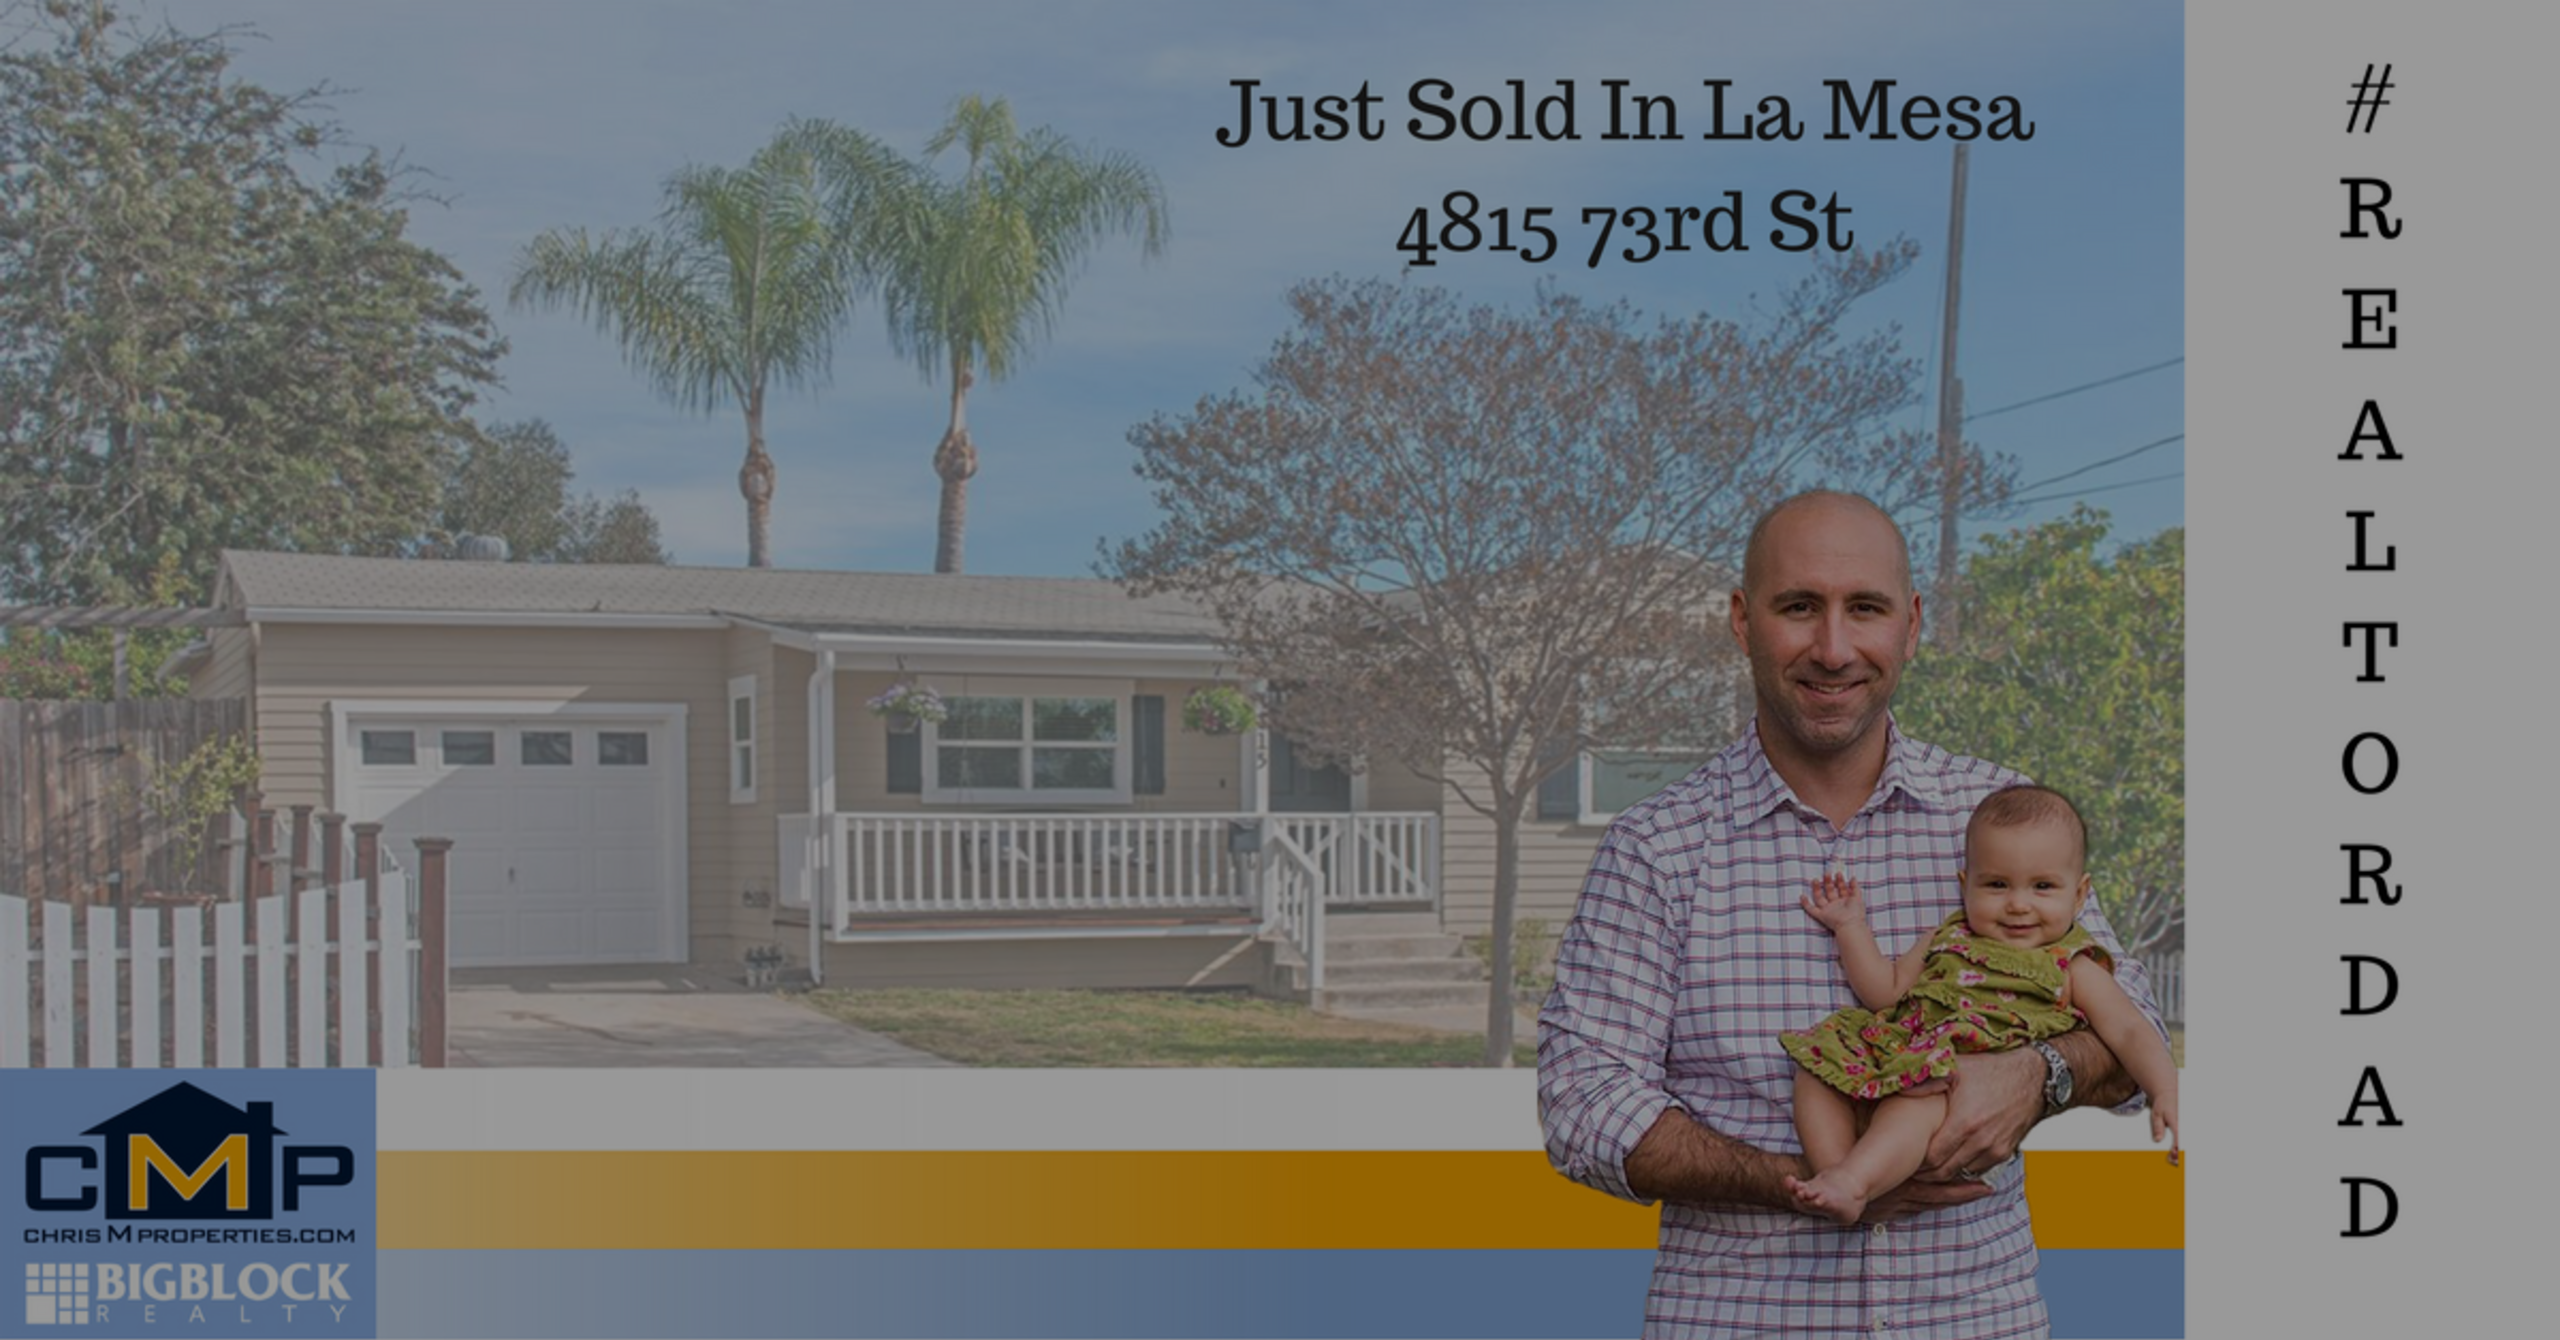 How To Build Equity In Your Home In La Mesa. We Did It At Closing